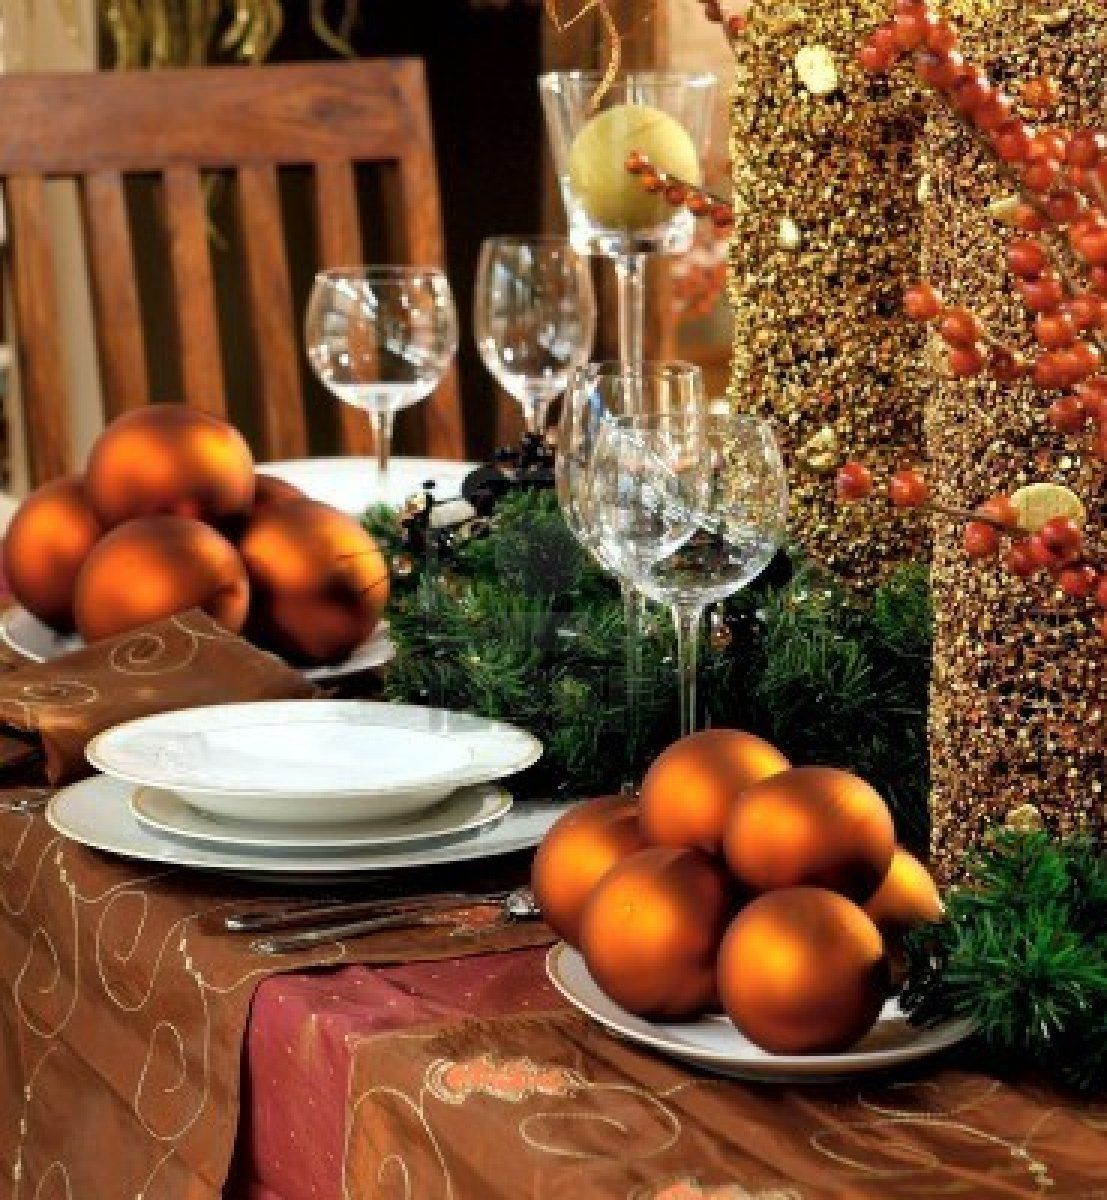 Christmas table decorations gold - Cheap Images About Christmas Dining Table Decorations On Pinterest With Christmas Table Decorations